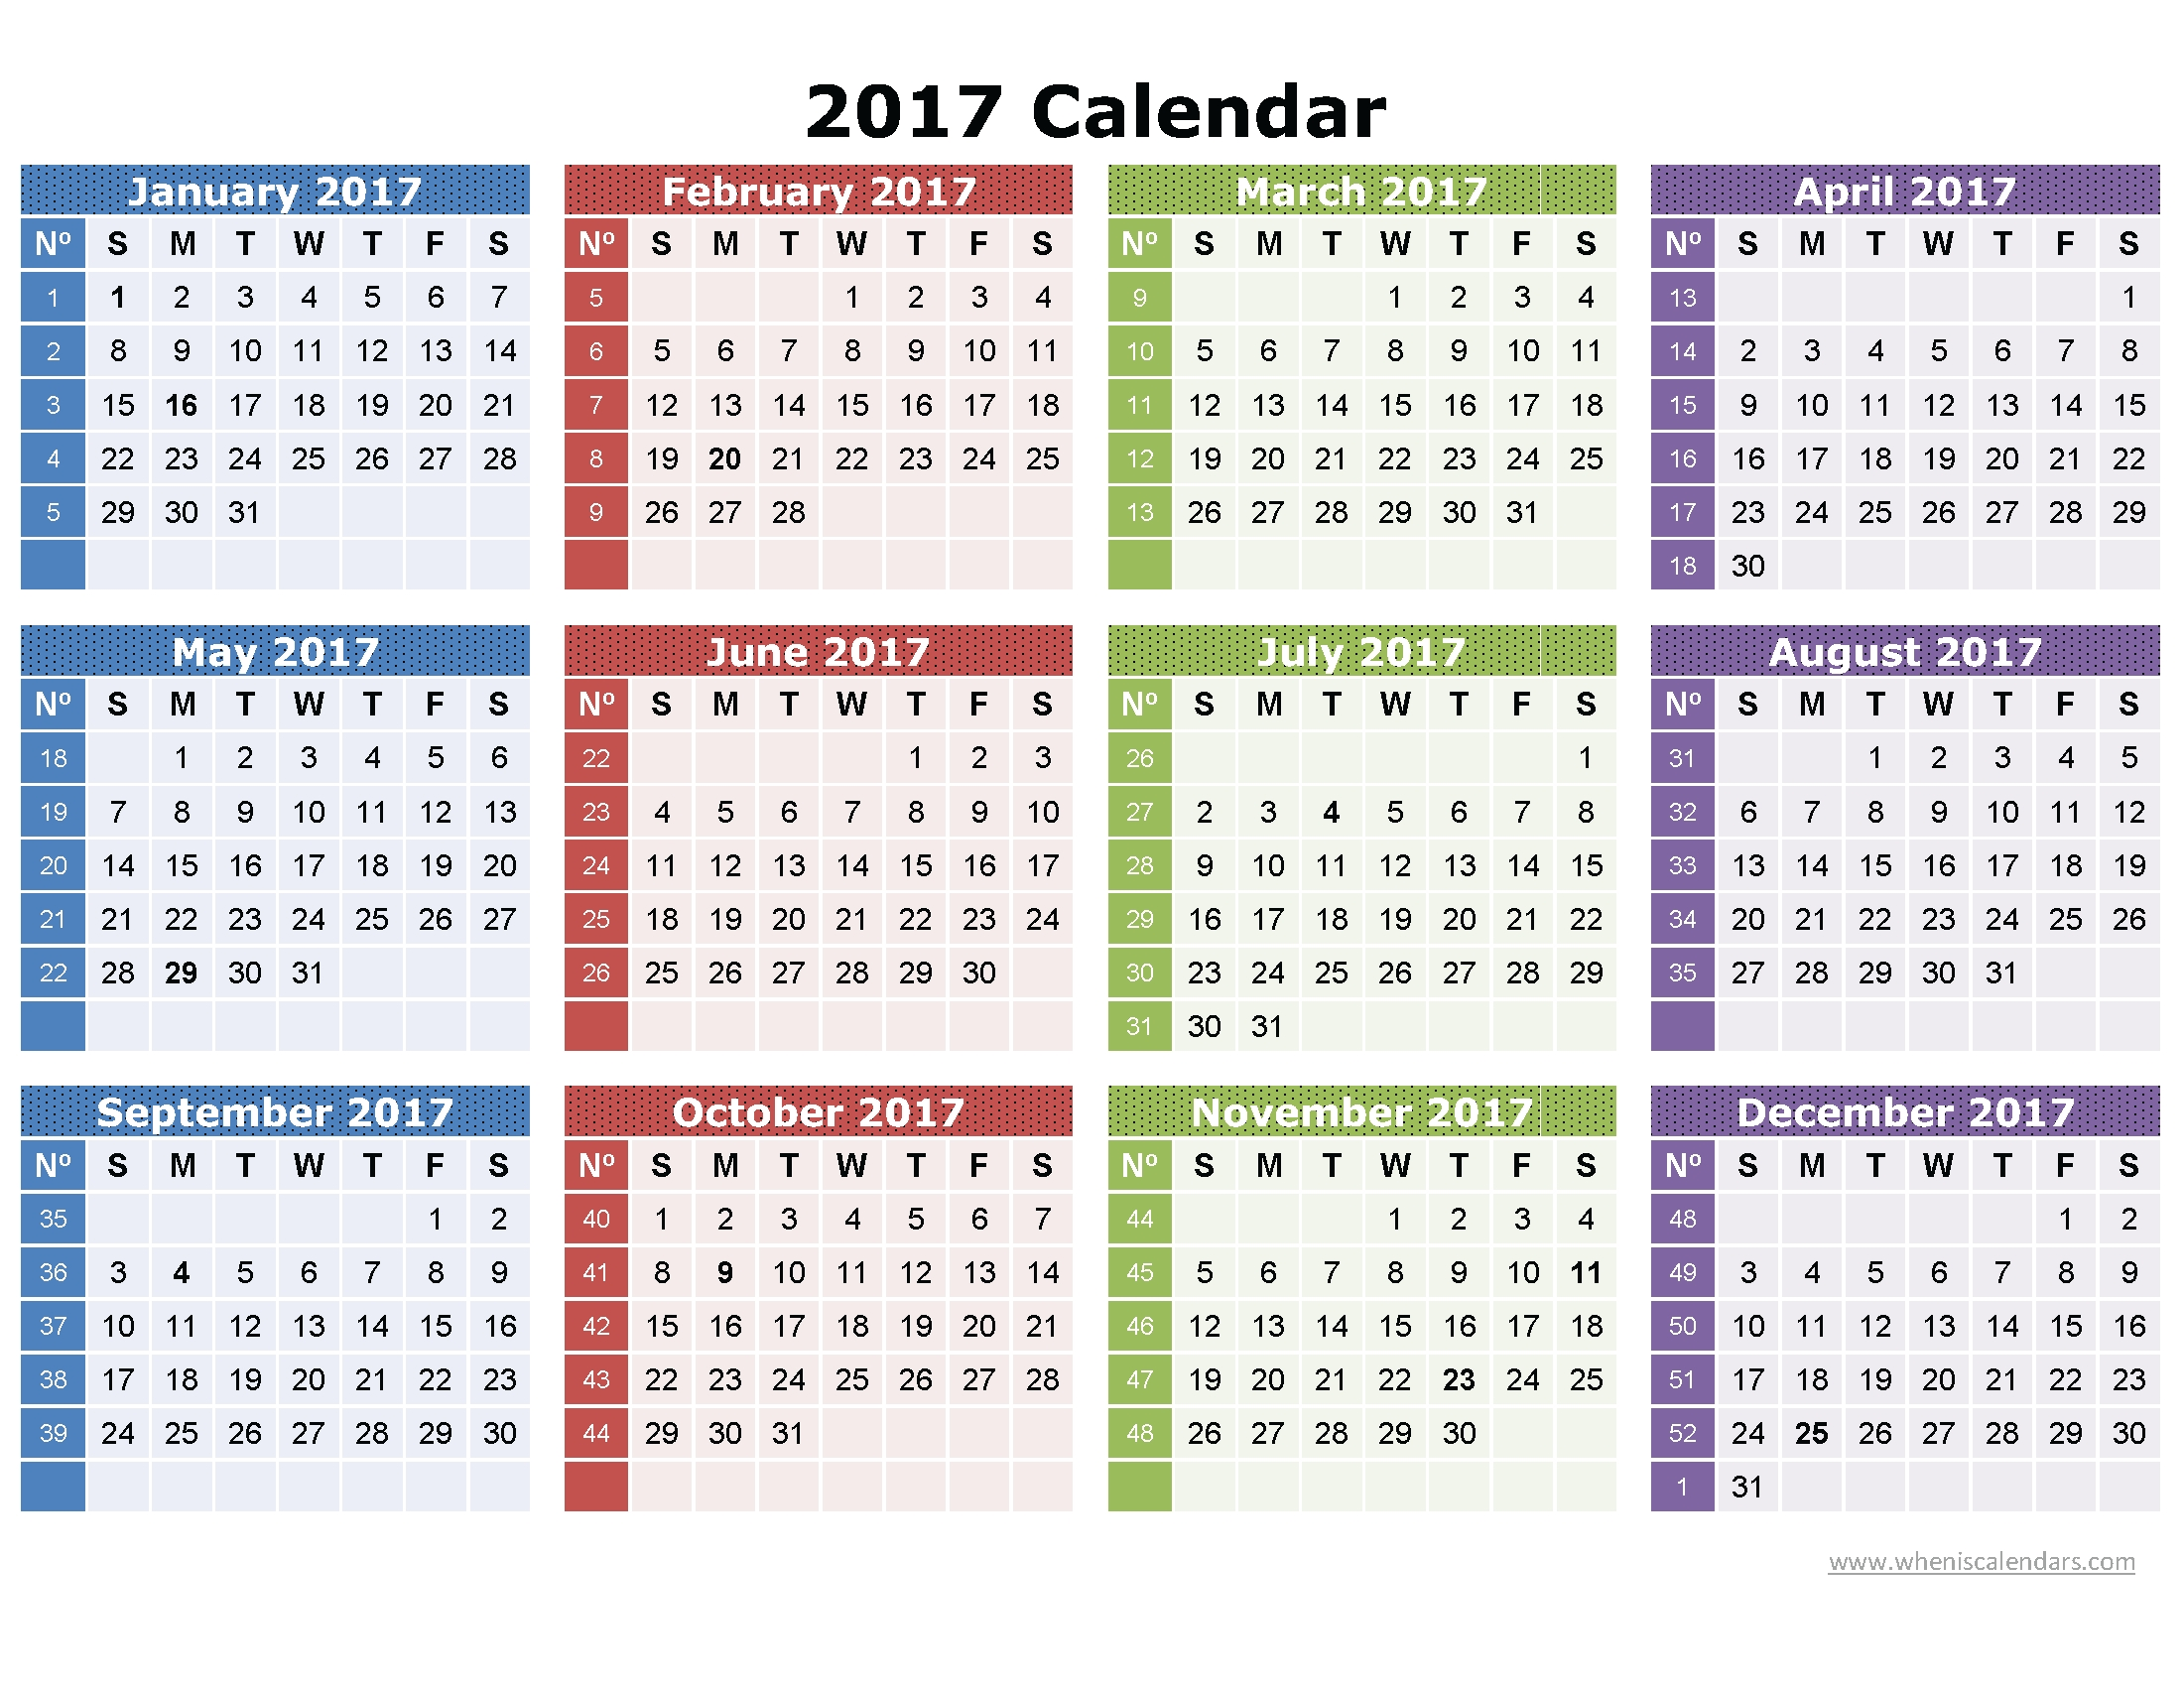 2017 Calendar Printable One Page | Download: Image (Full